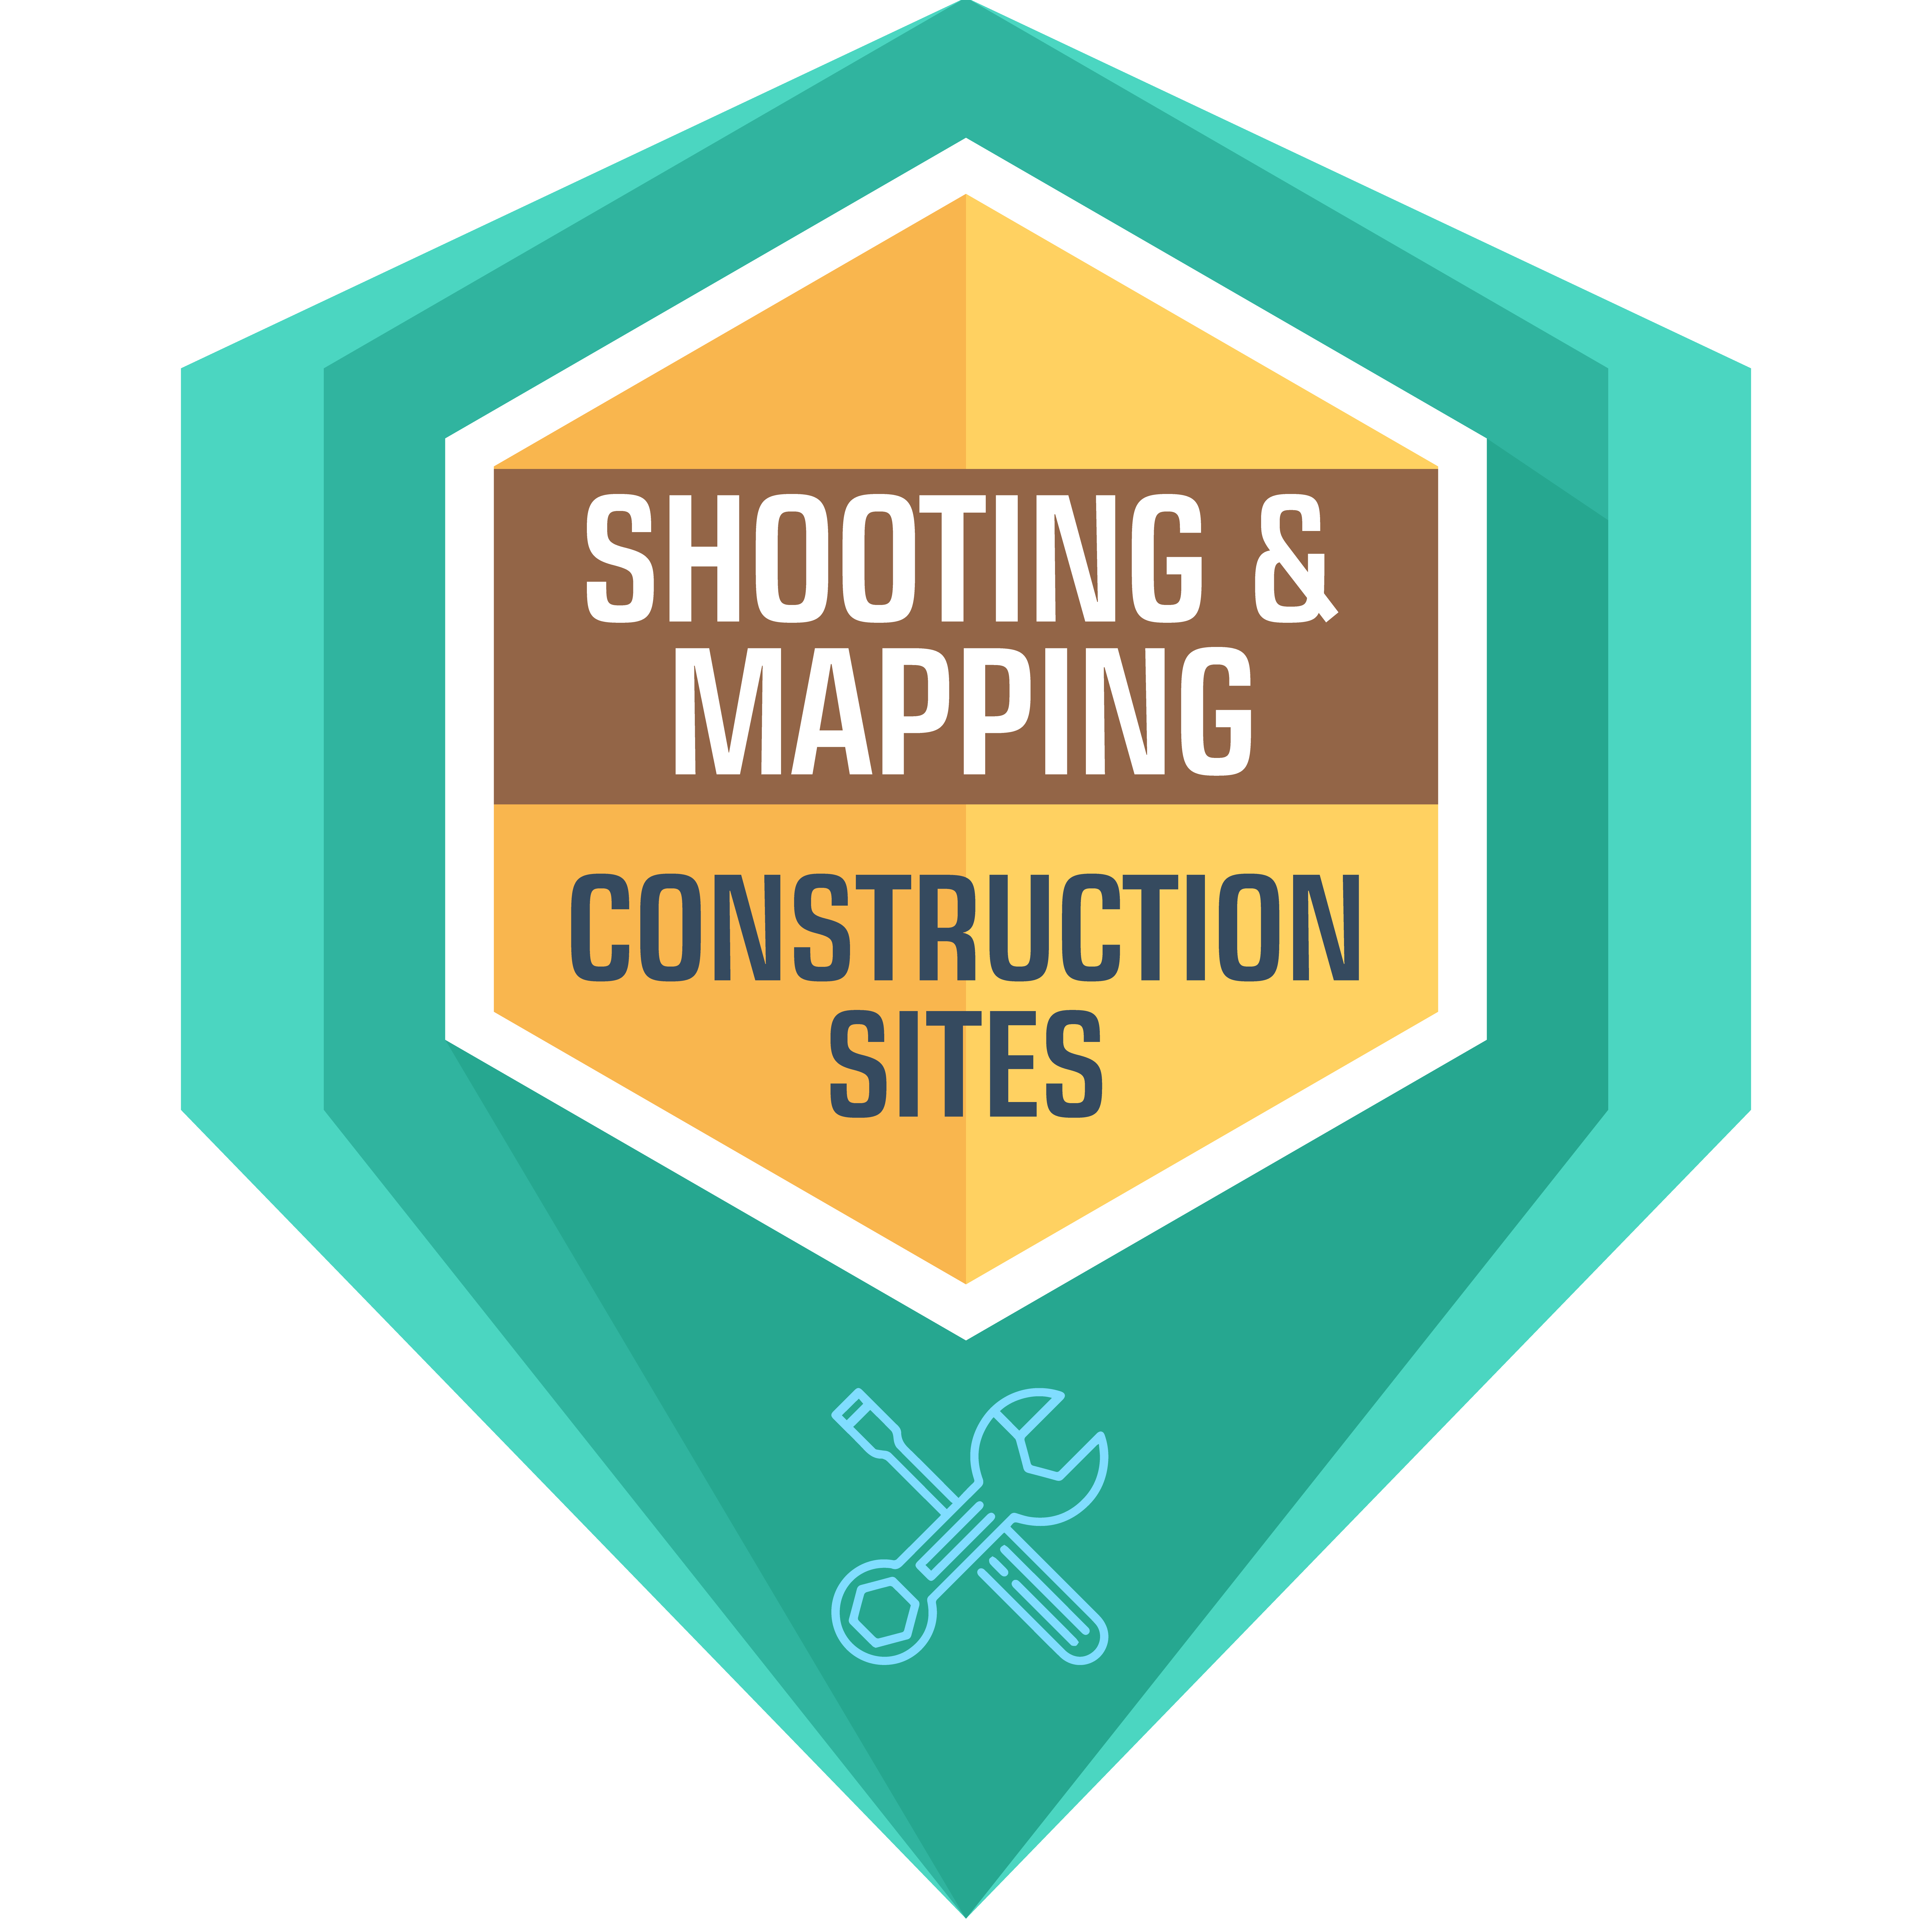 Shooting & Mapping Construction Sites with Drones